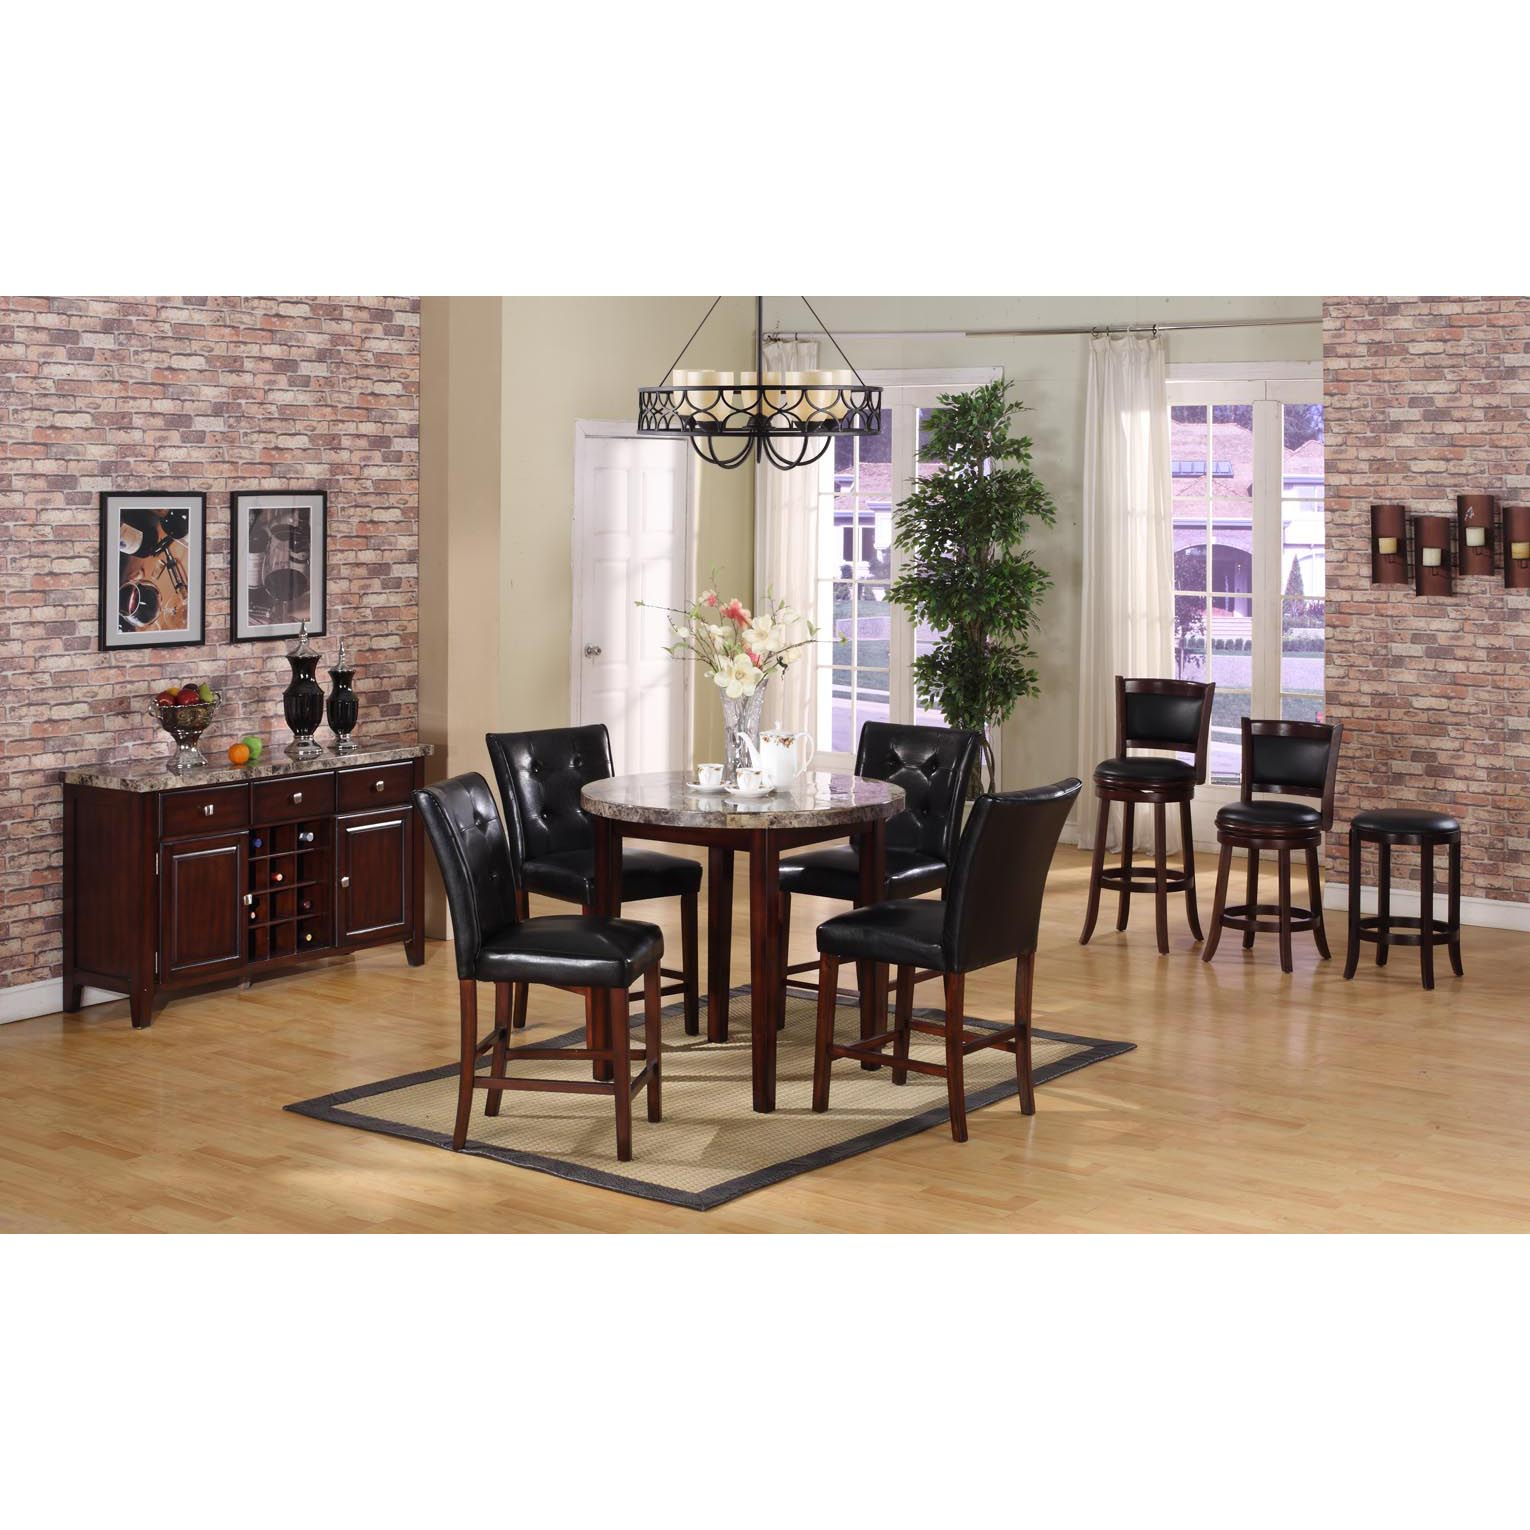 Radians Emperor Dark Faux-marble Table with Black Barstools